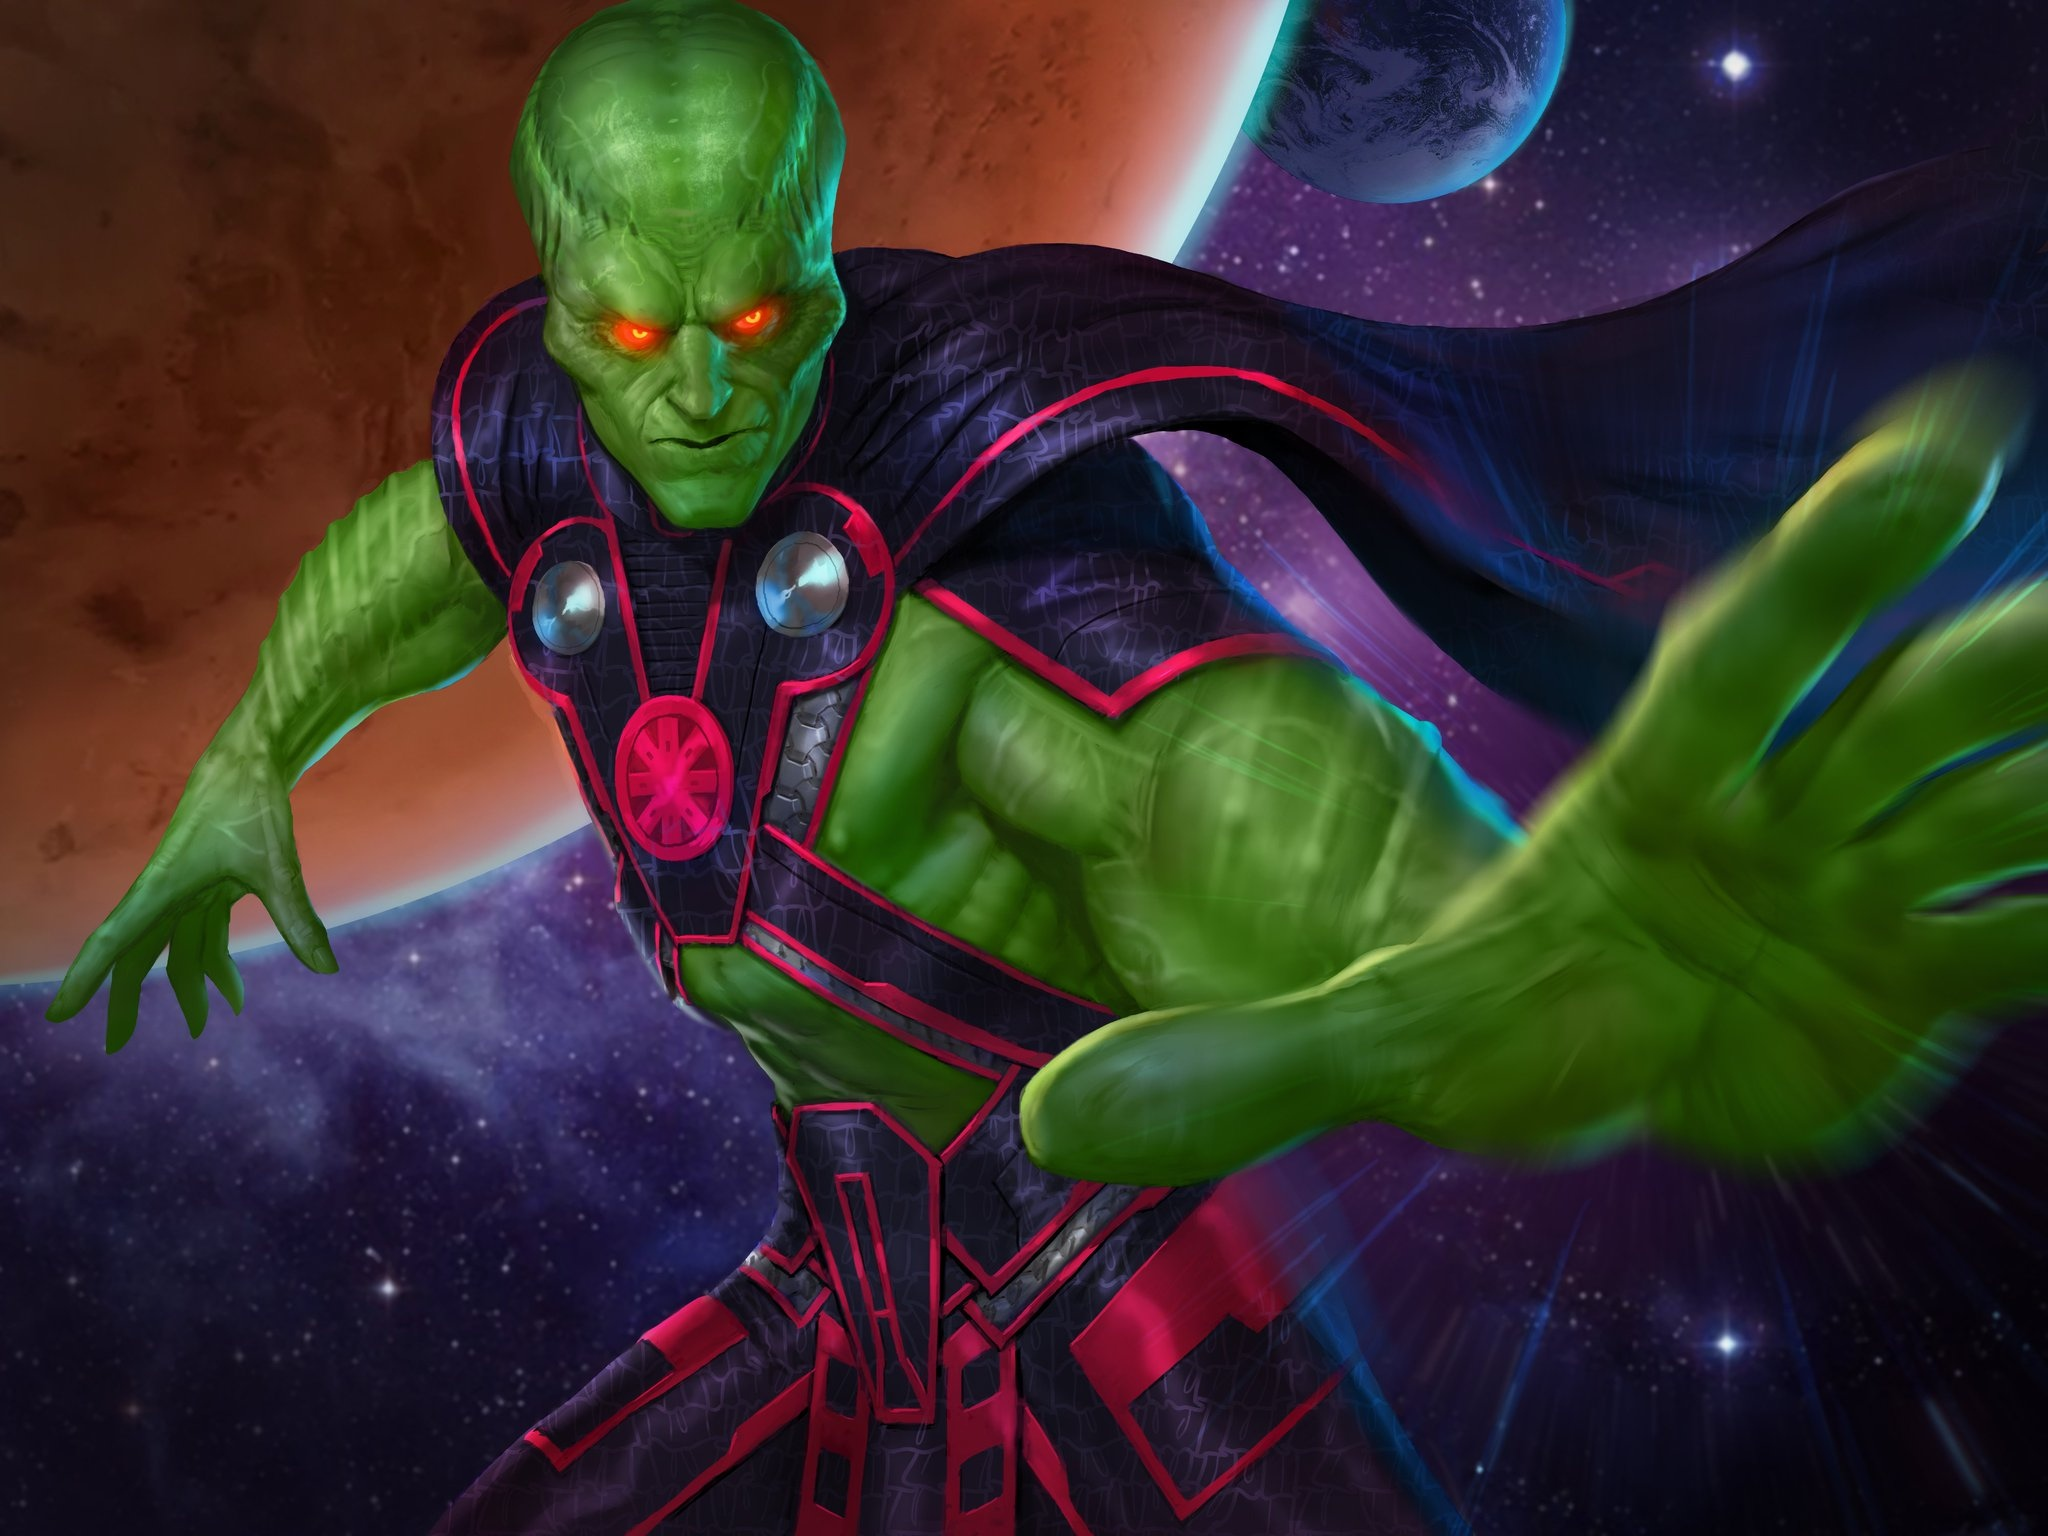 J'onn J'onzz (DC Legends)